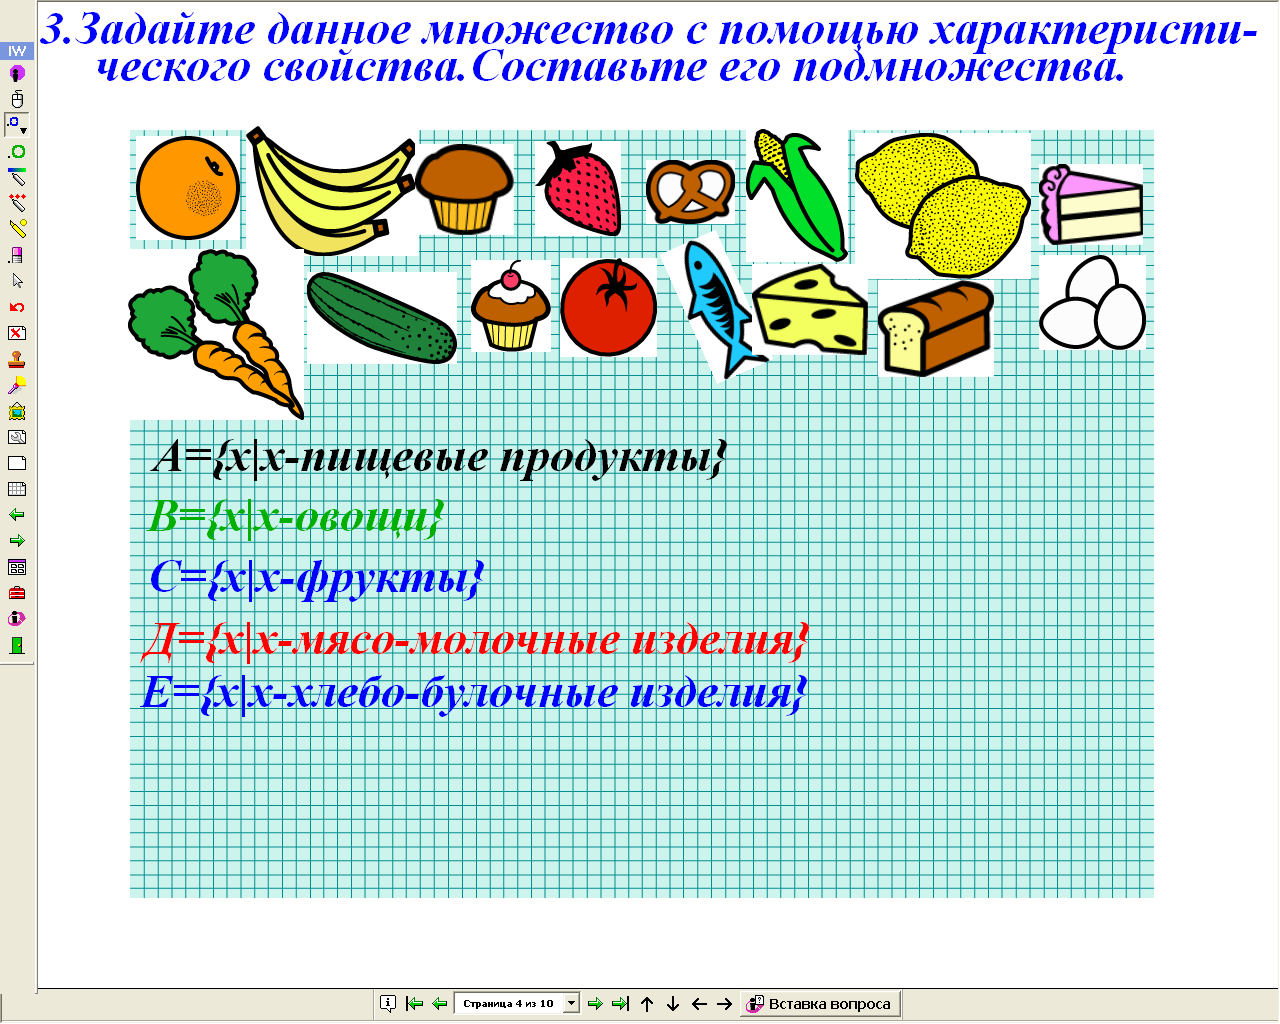 hello_html_m74a0d0ae.png